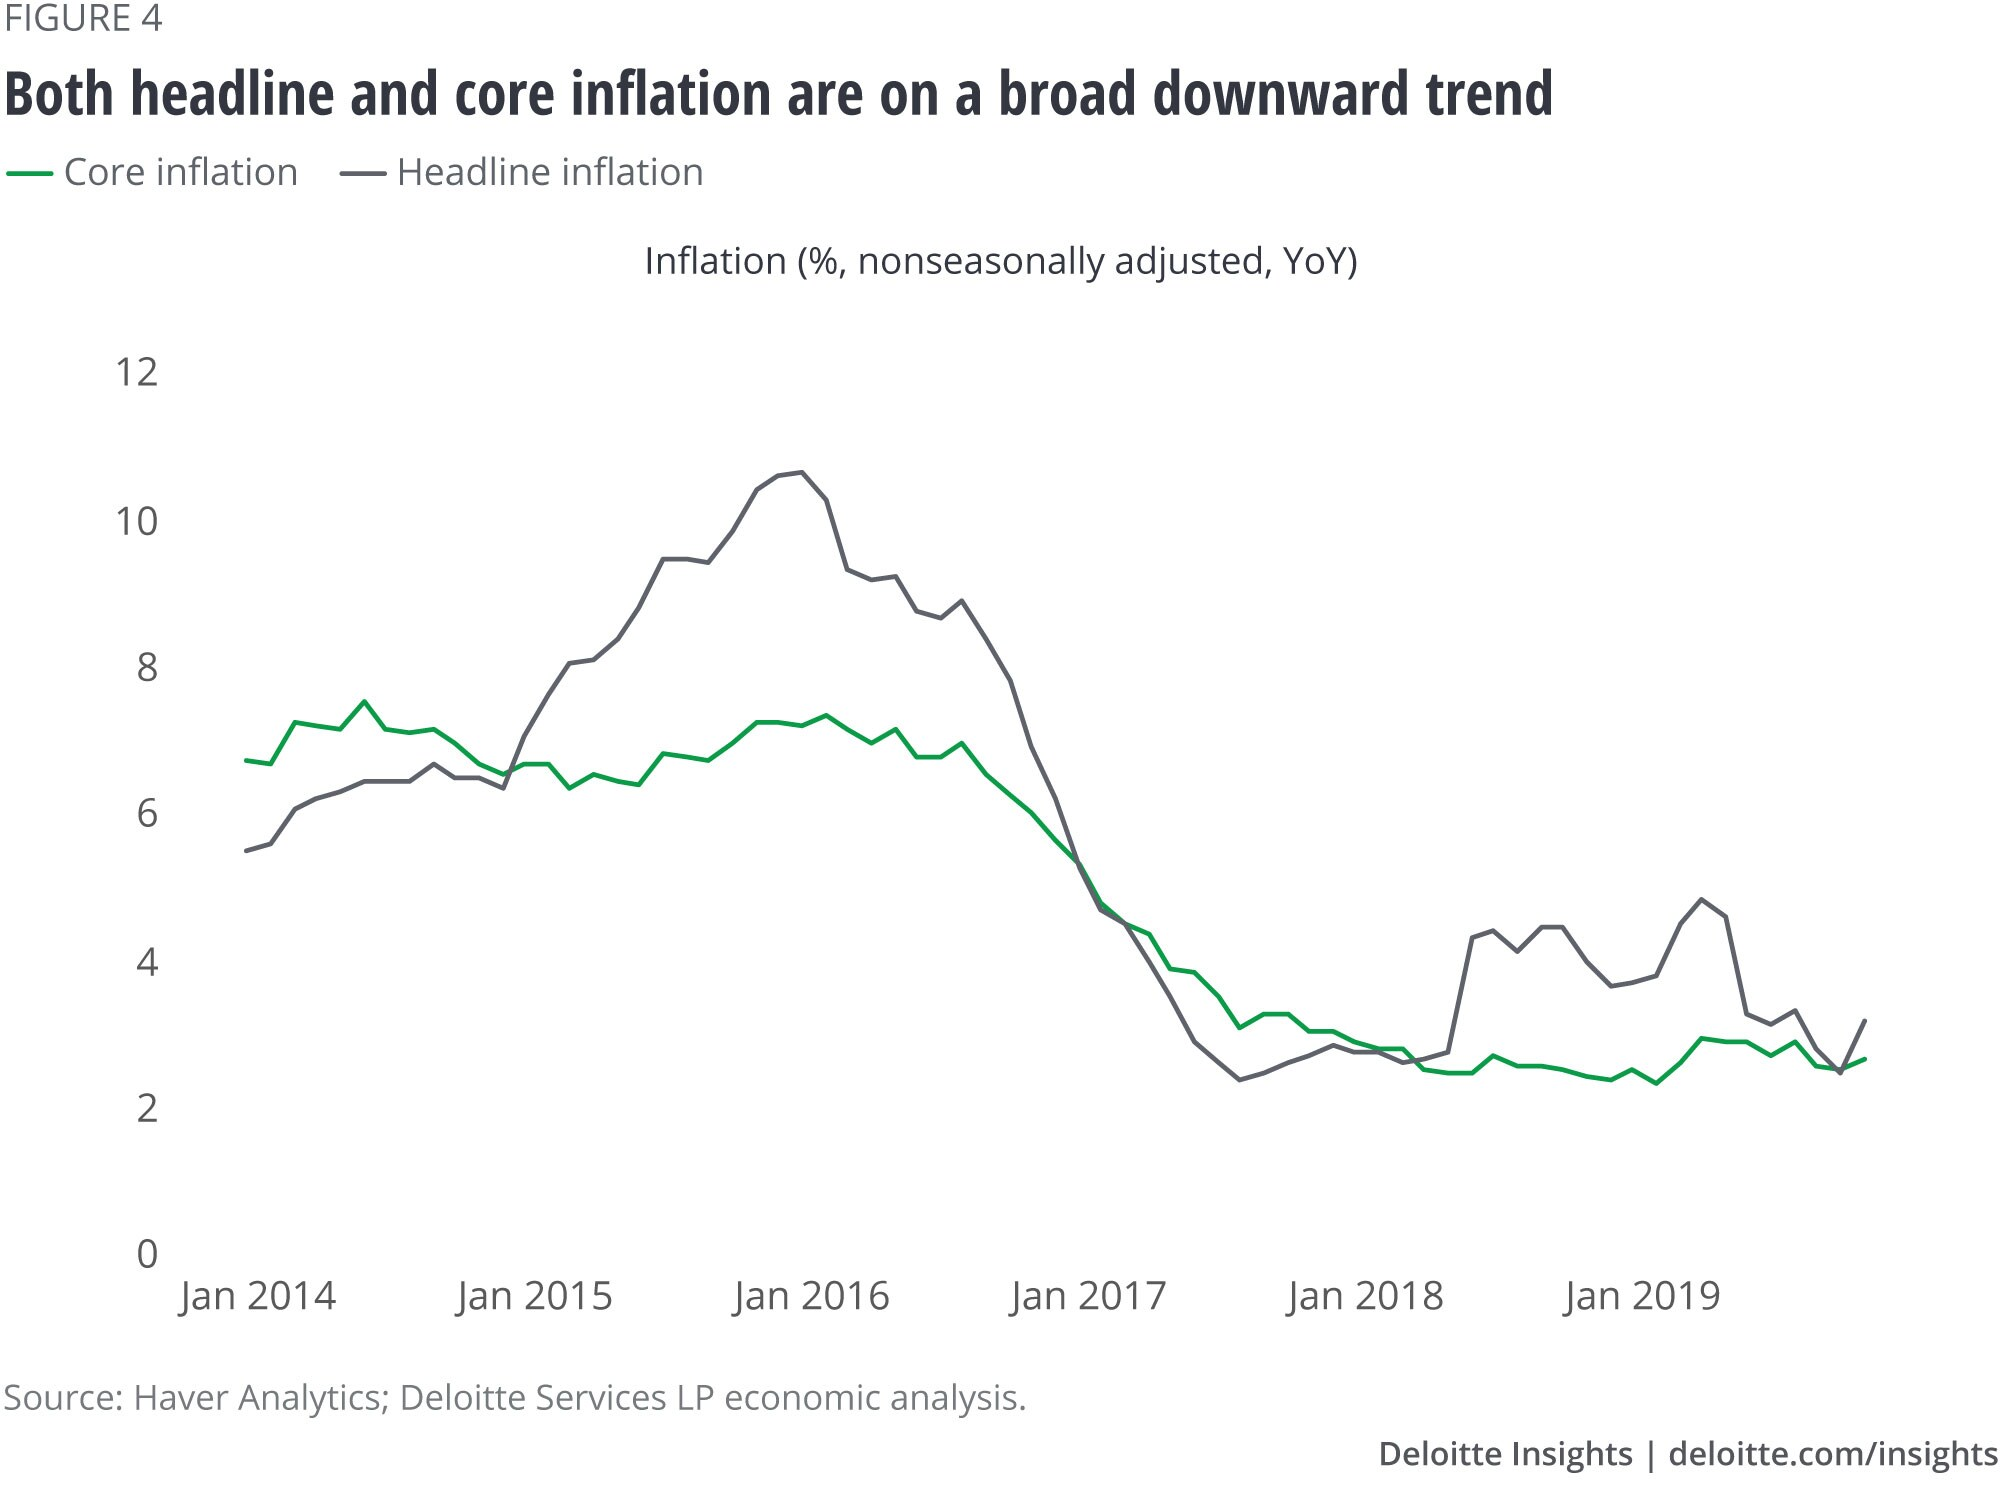 Both headline and core inflation are on a broad downward trend